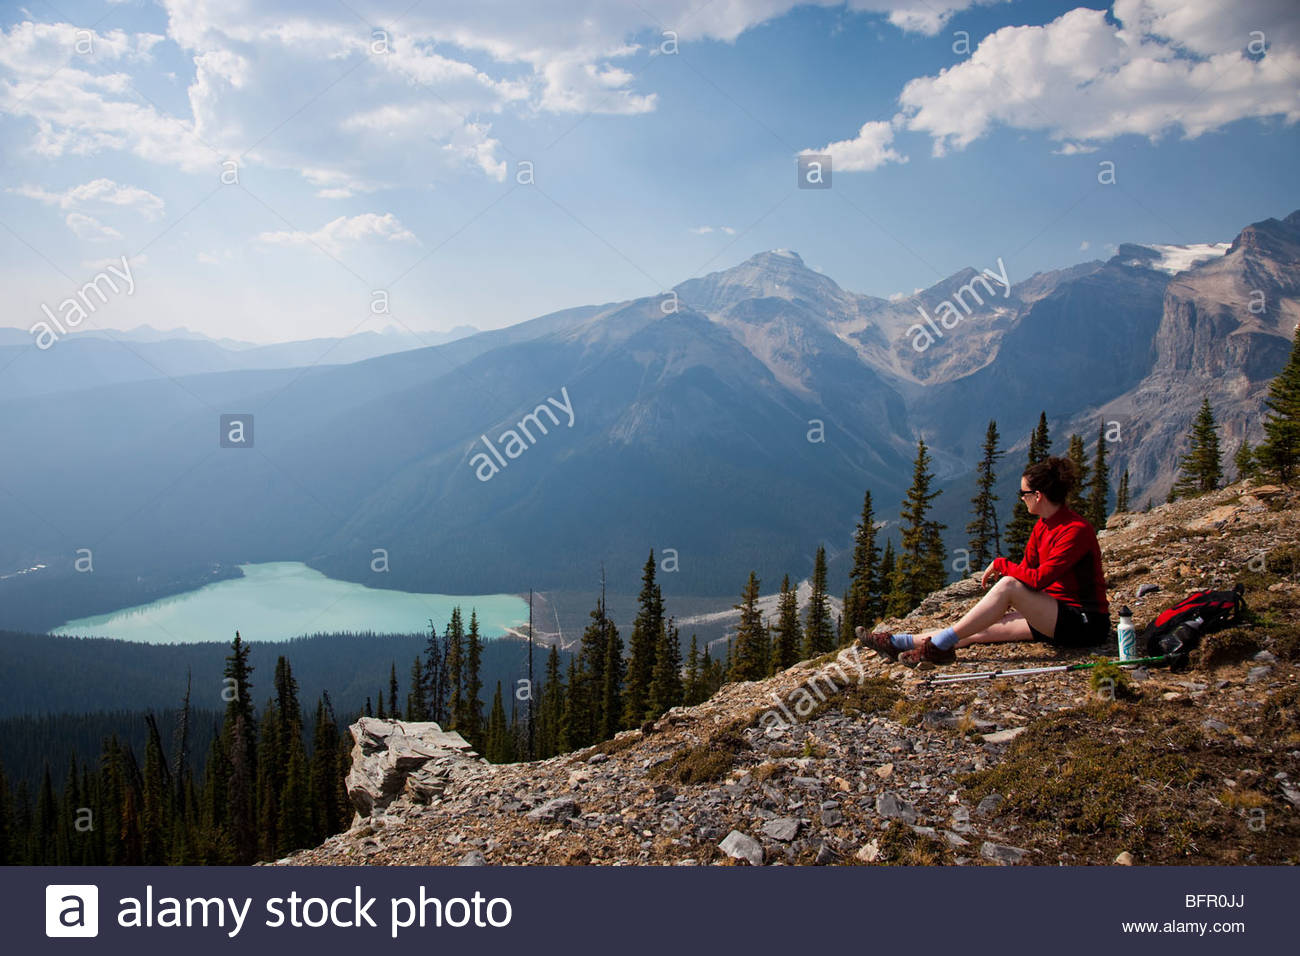 A woman admires a hard earned view. - Stock Image